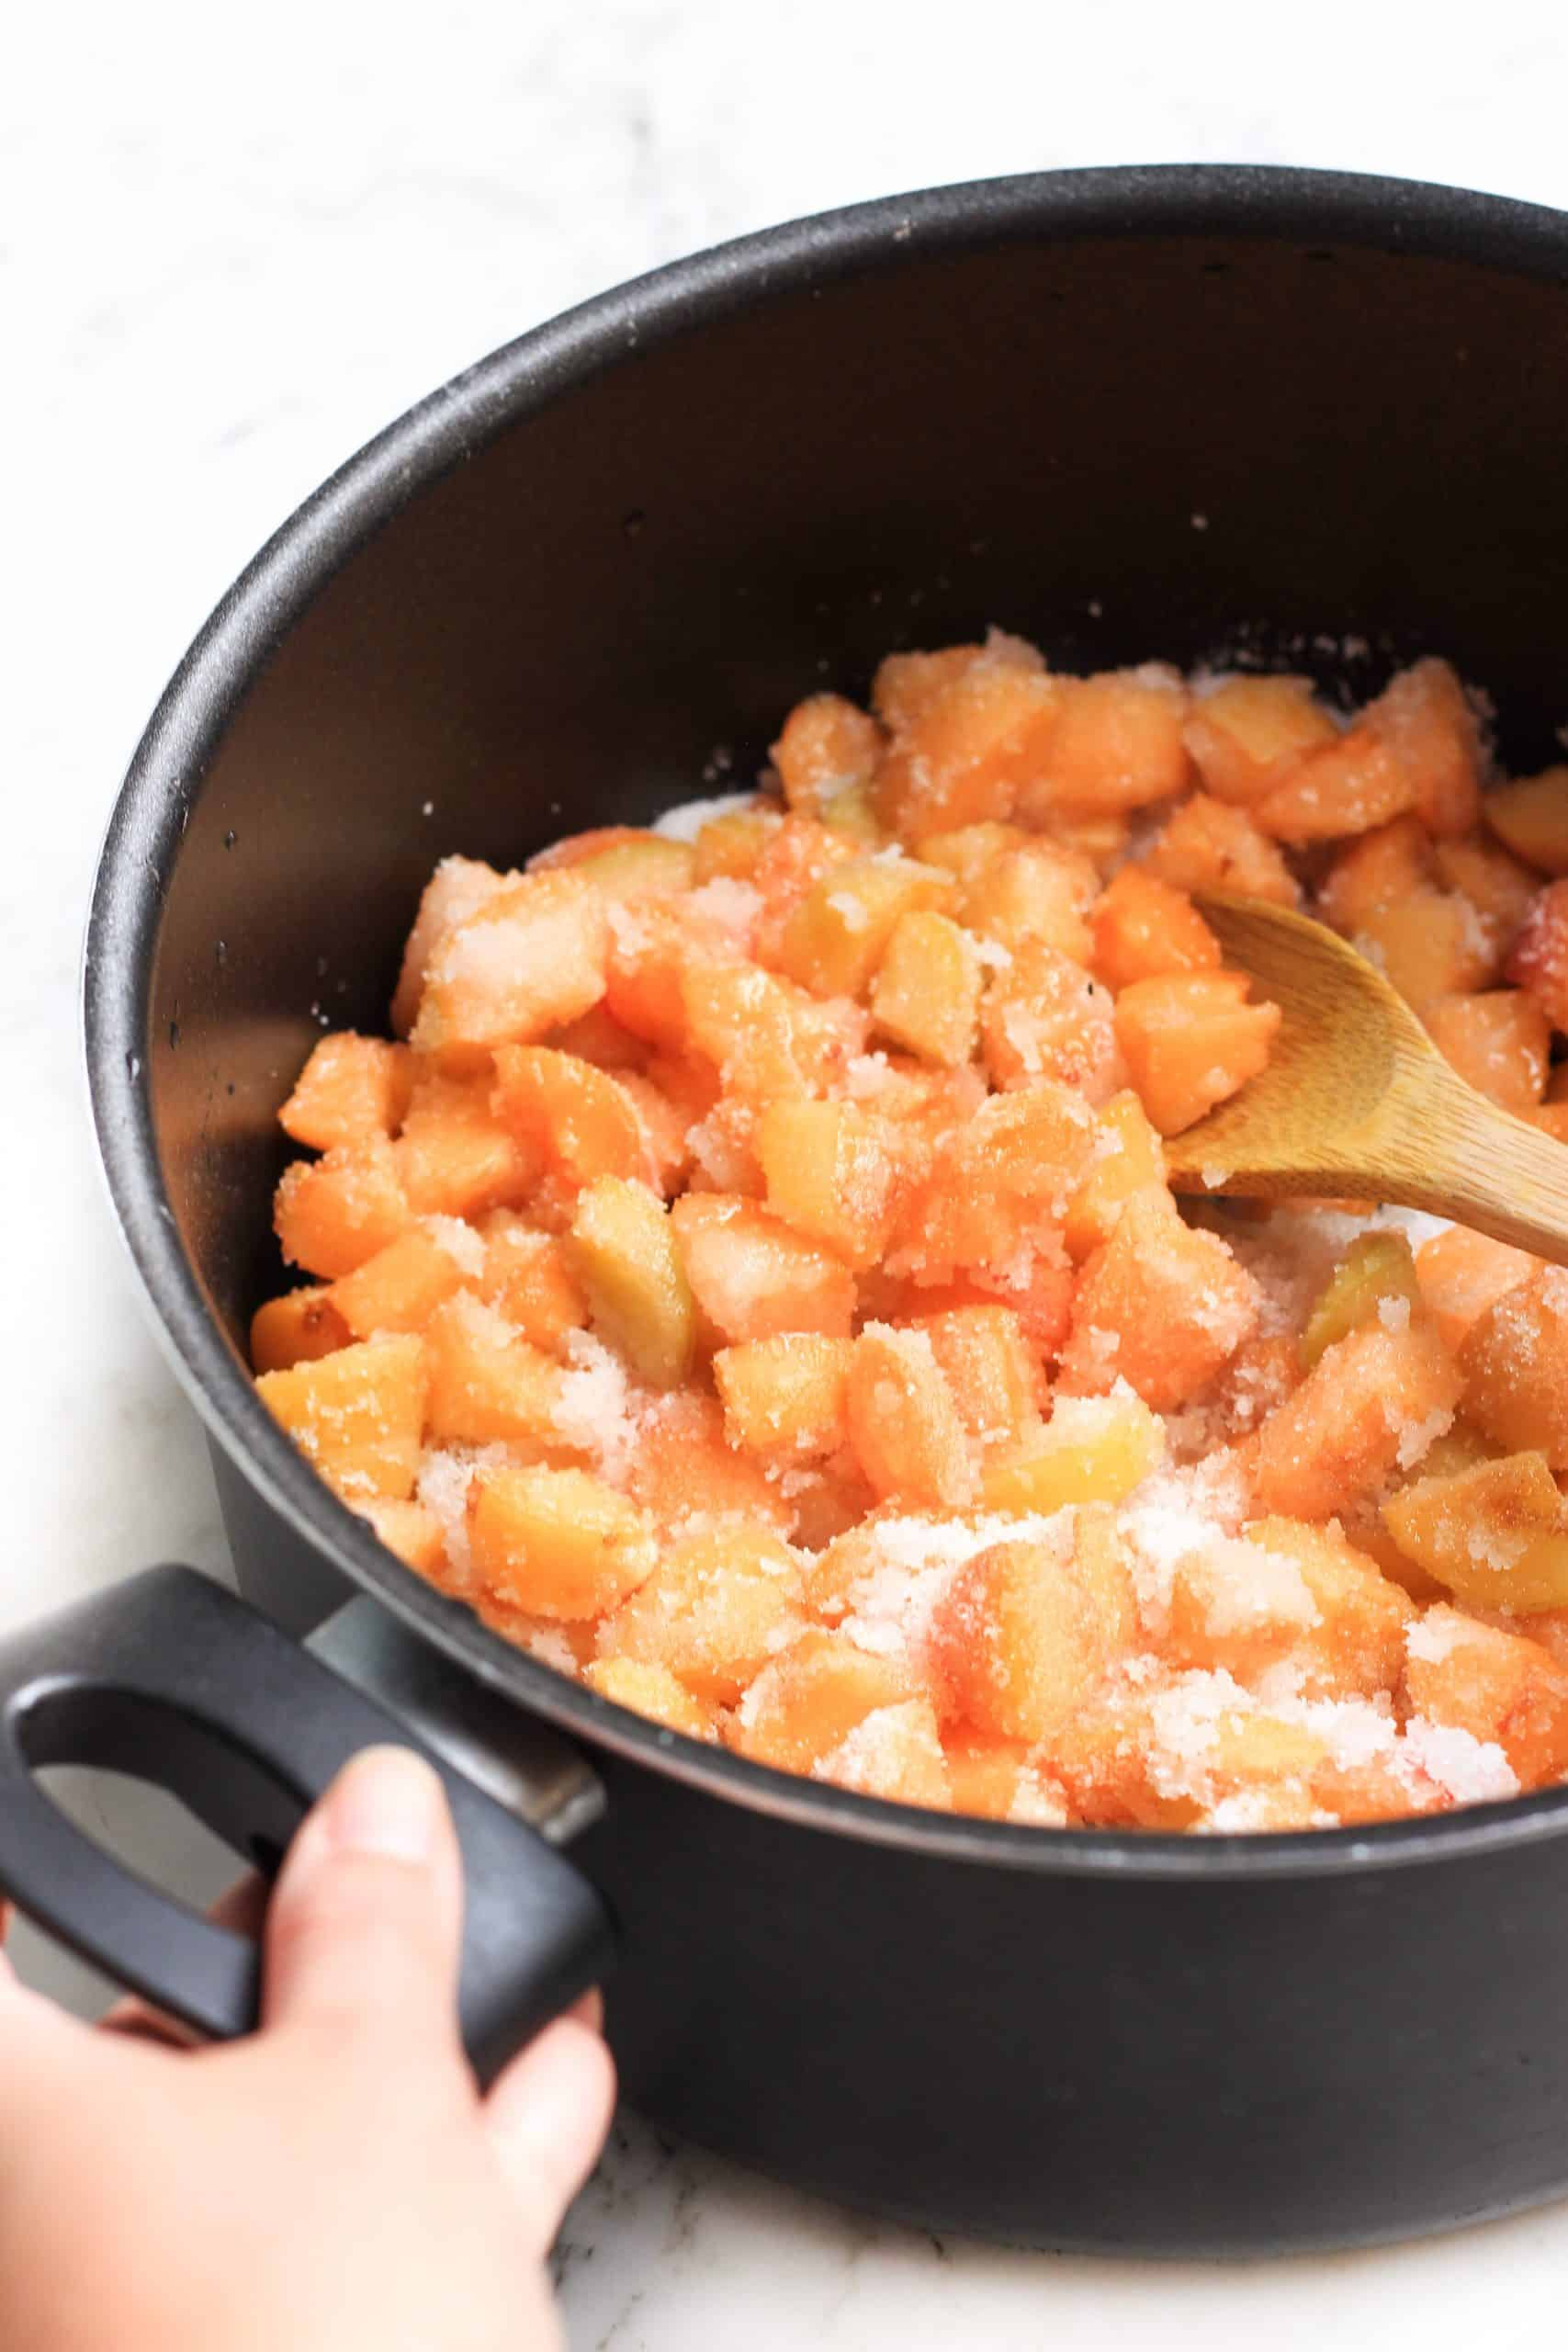 Mixing sugar, cut apricots and lemon juice in a large pot.